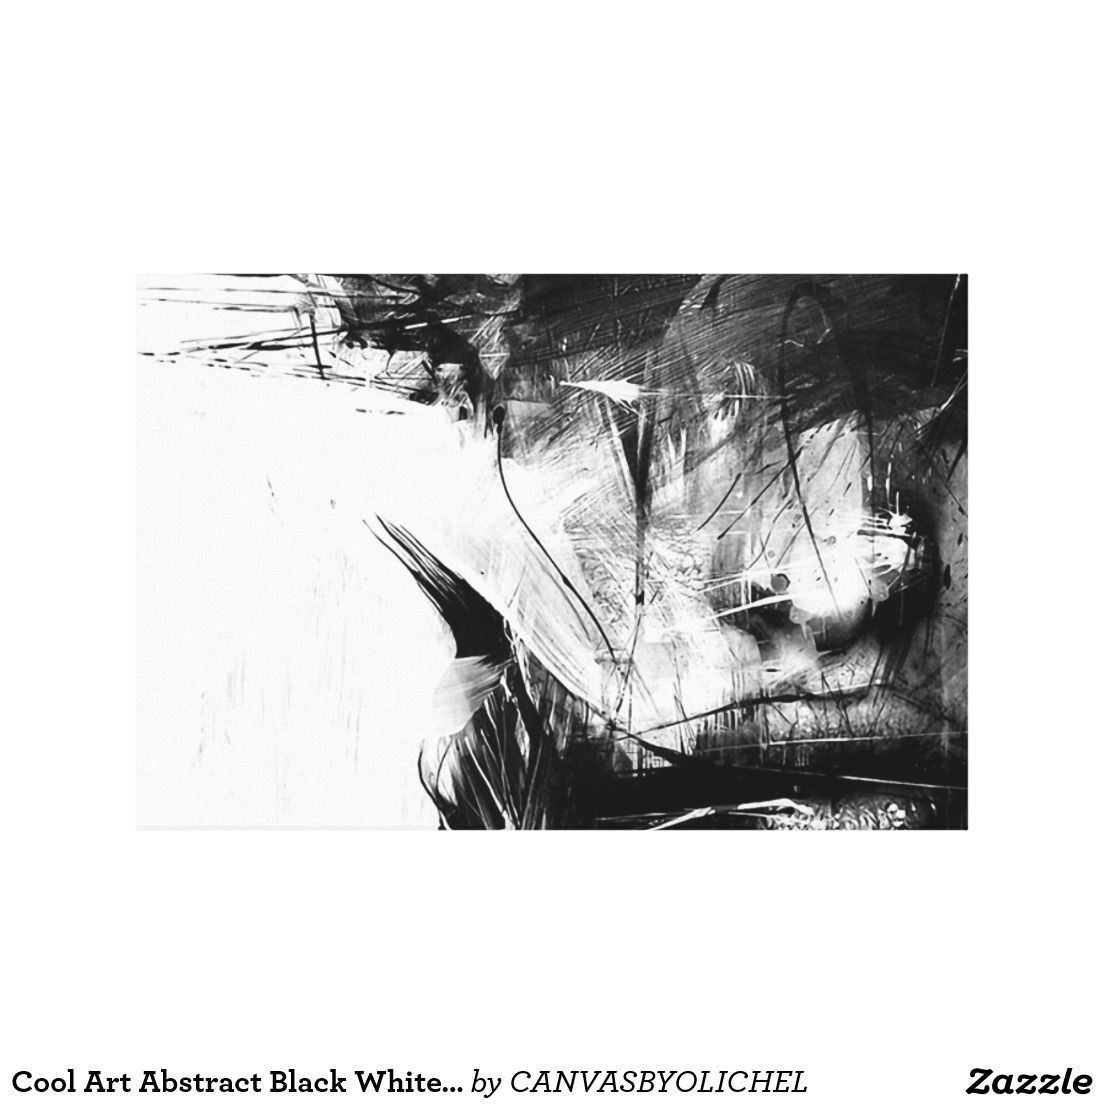 Cool art abstract black white face woman canvas print black and white cool abstract black white face woman vintage buy sell artistic